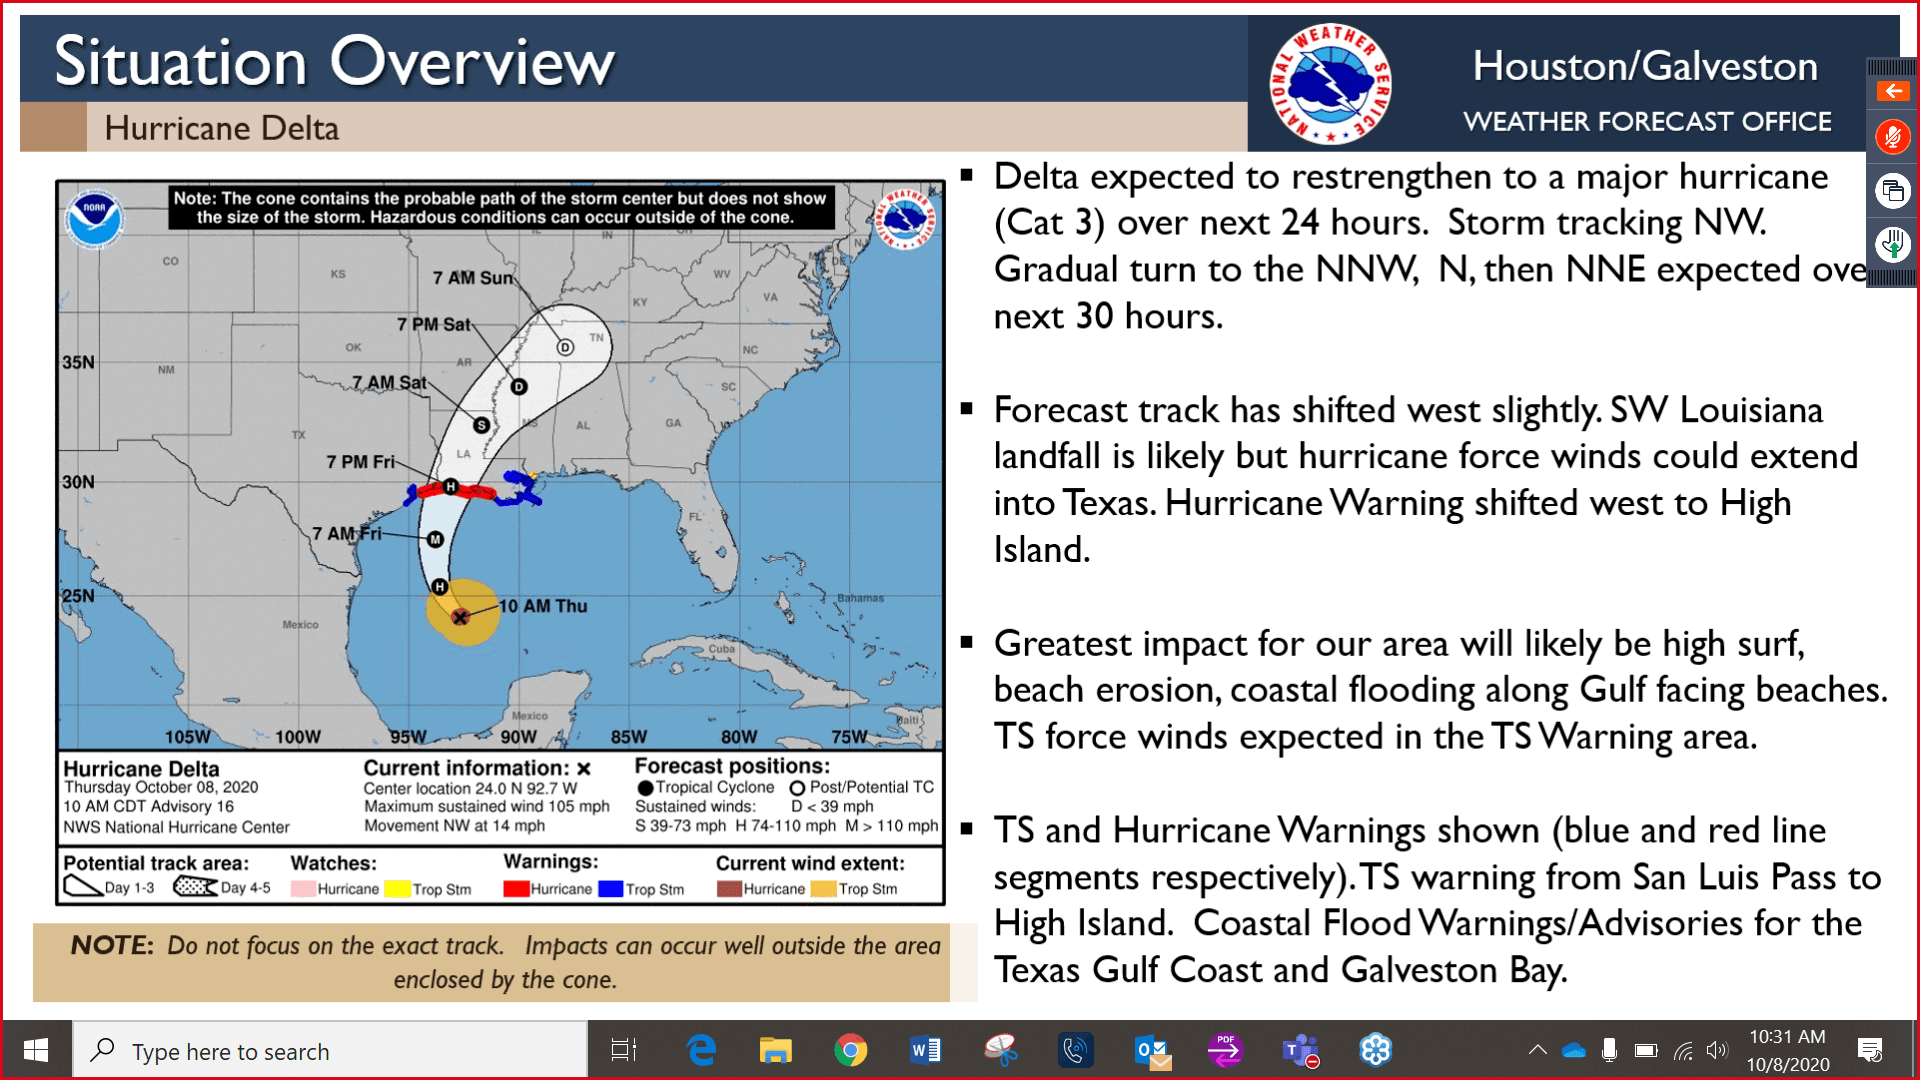 Hurricane Delta track information from October 8, 2020, 10:30 a.m.